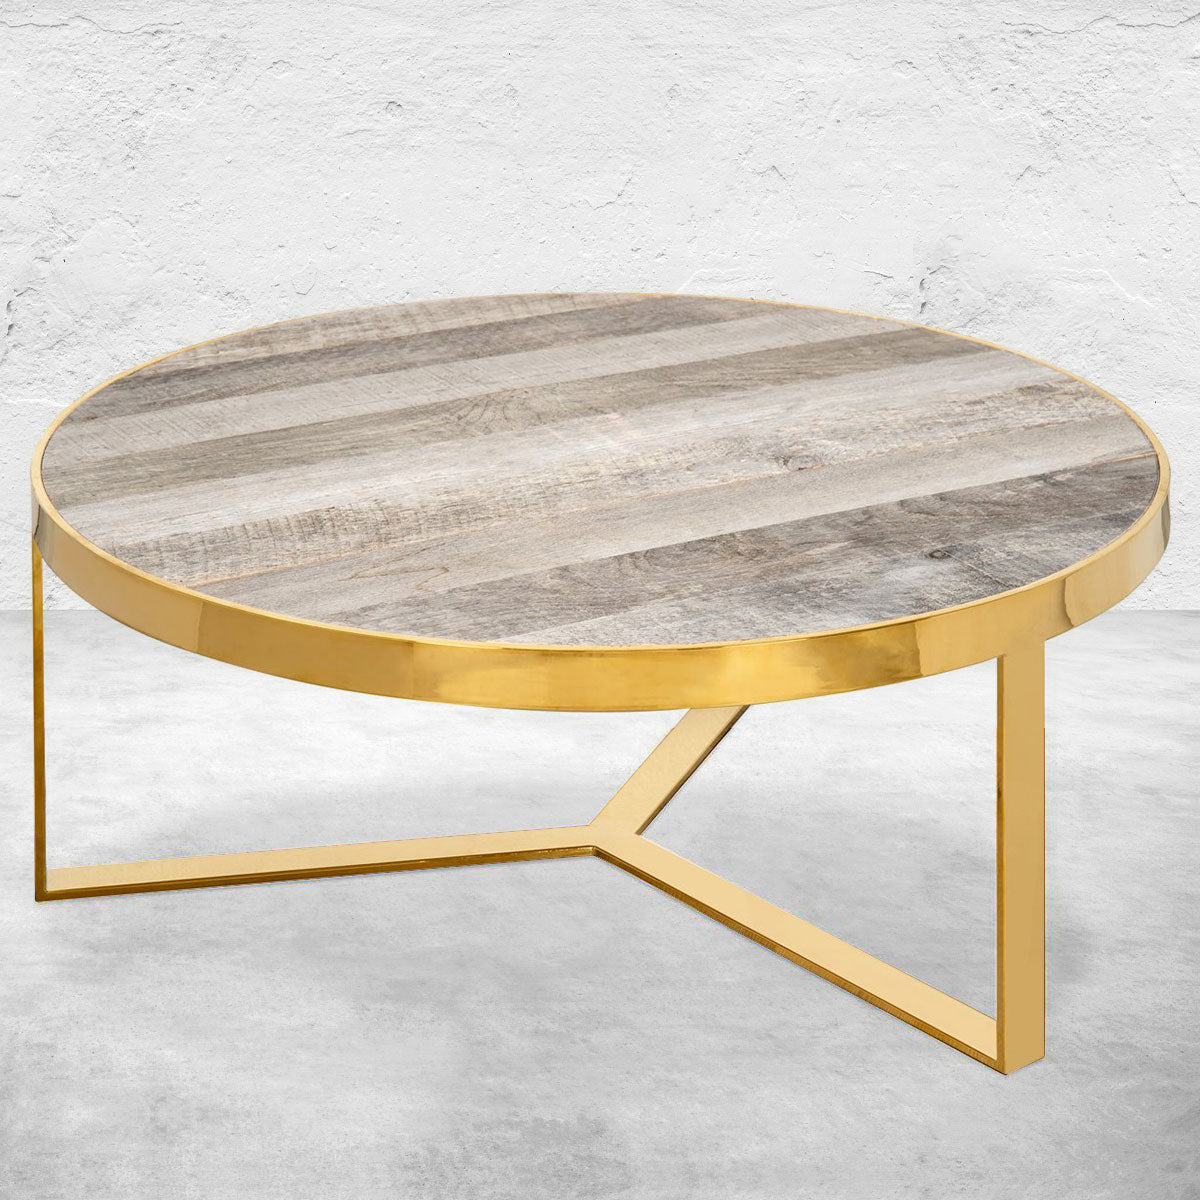 Upper East Side Coffee Table in Reclaimed Wood